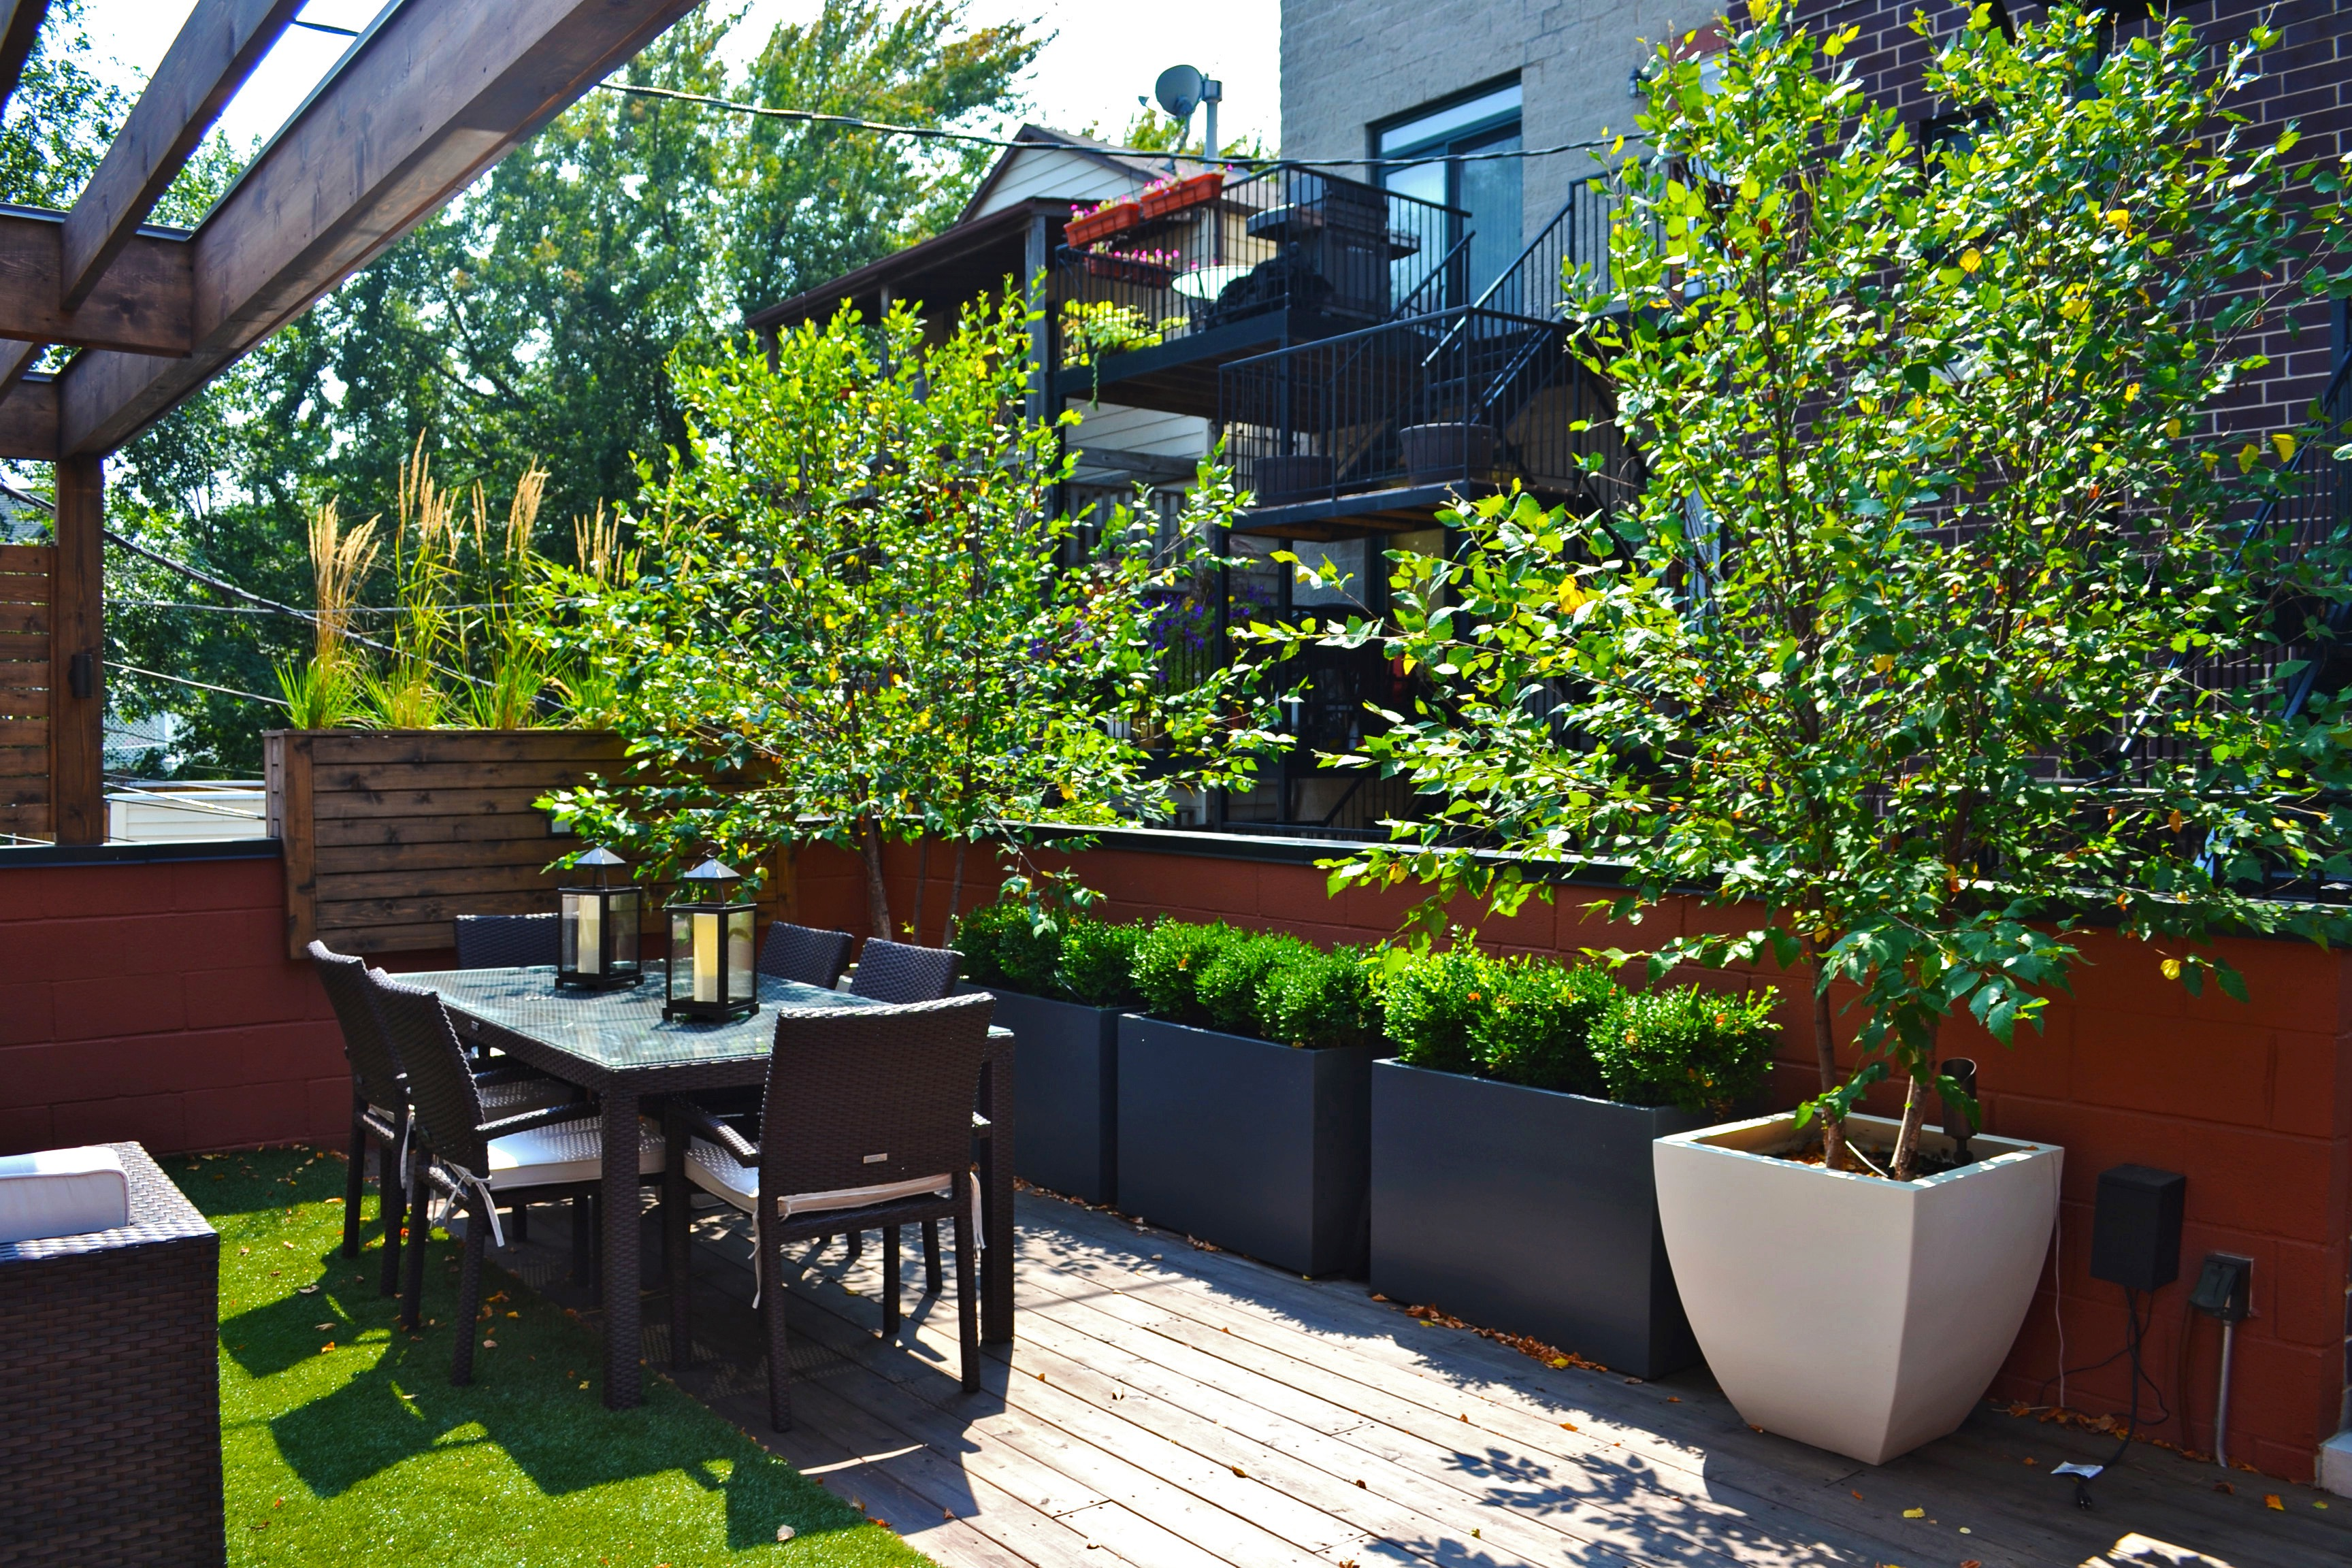 Contemporary Urban Rooftop Deck Garden (Image 17 of 35)